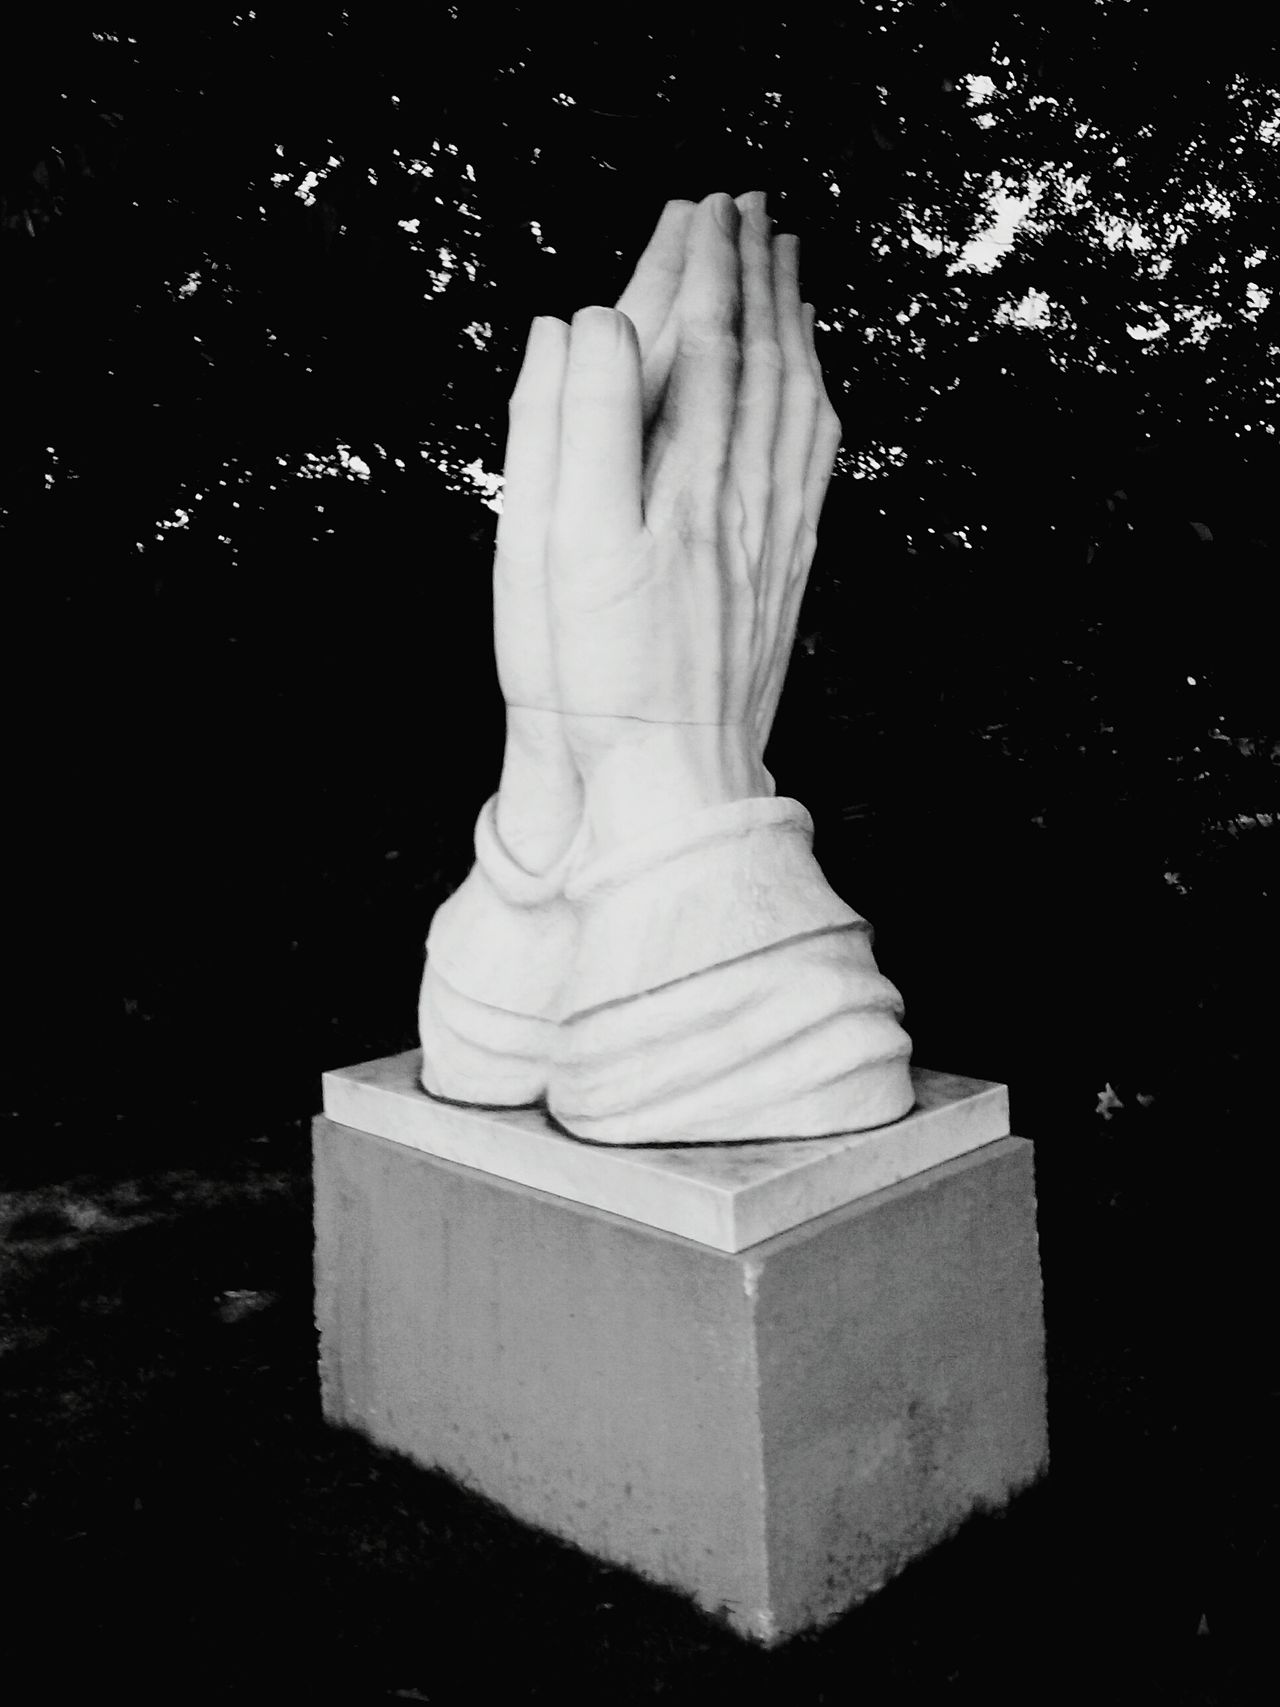 Statue Prayinghands Hugehands Blackandwhite Nopeople Eyeemphoto The Magic Mission